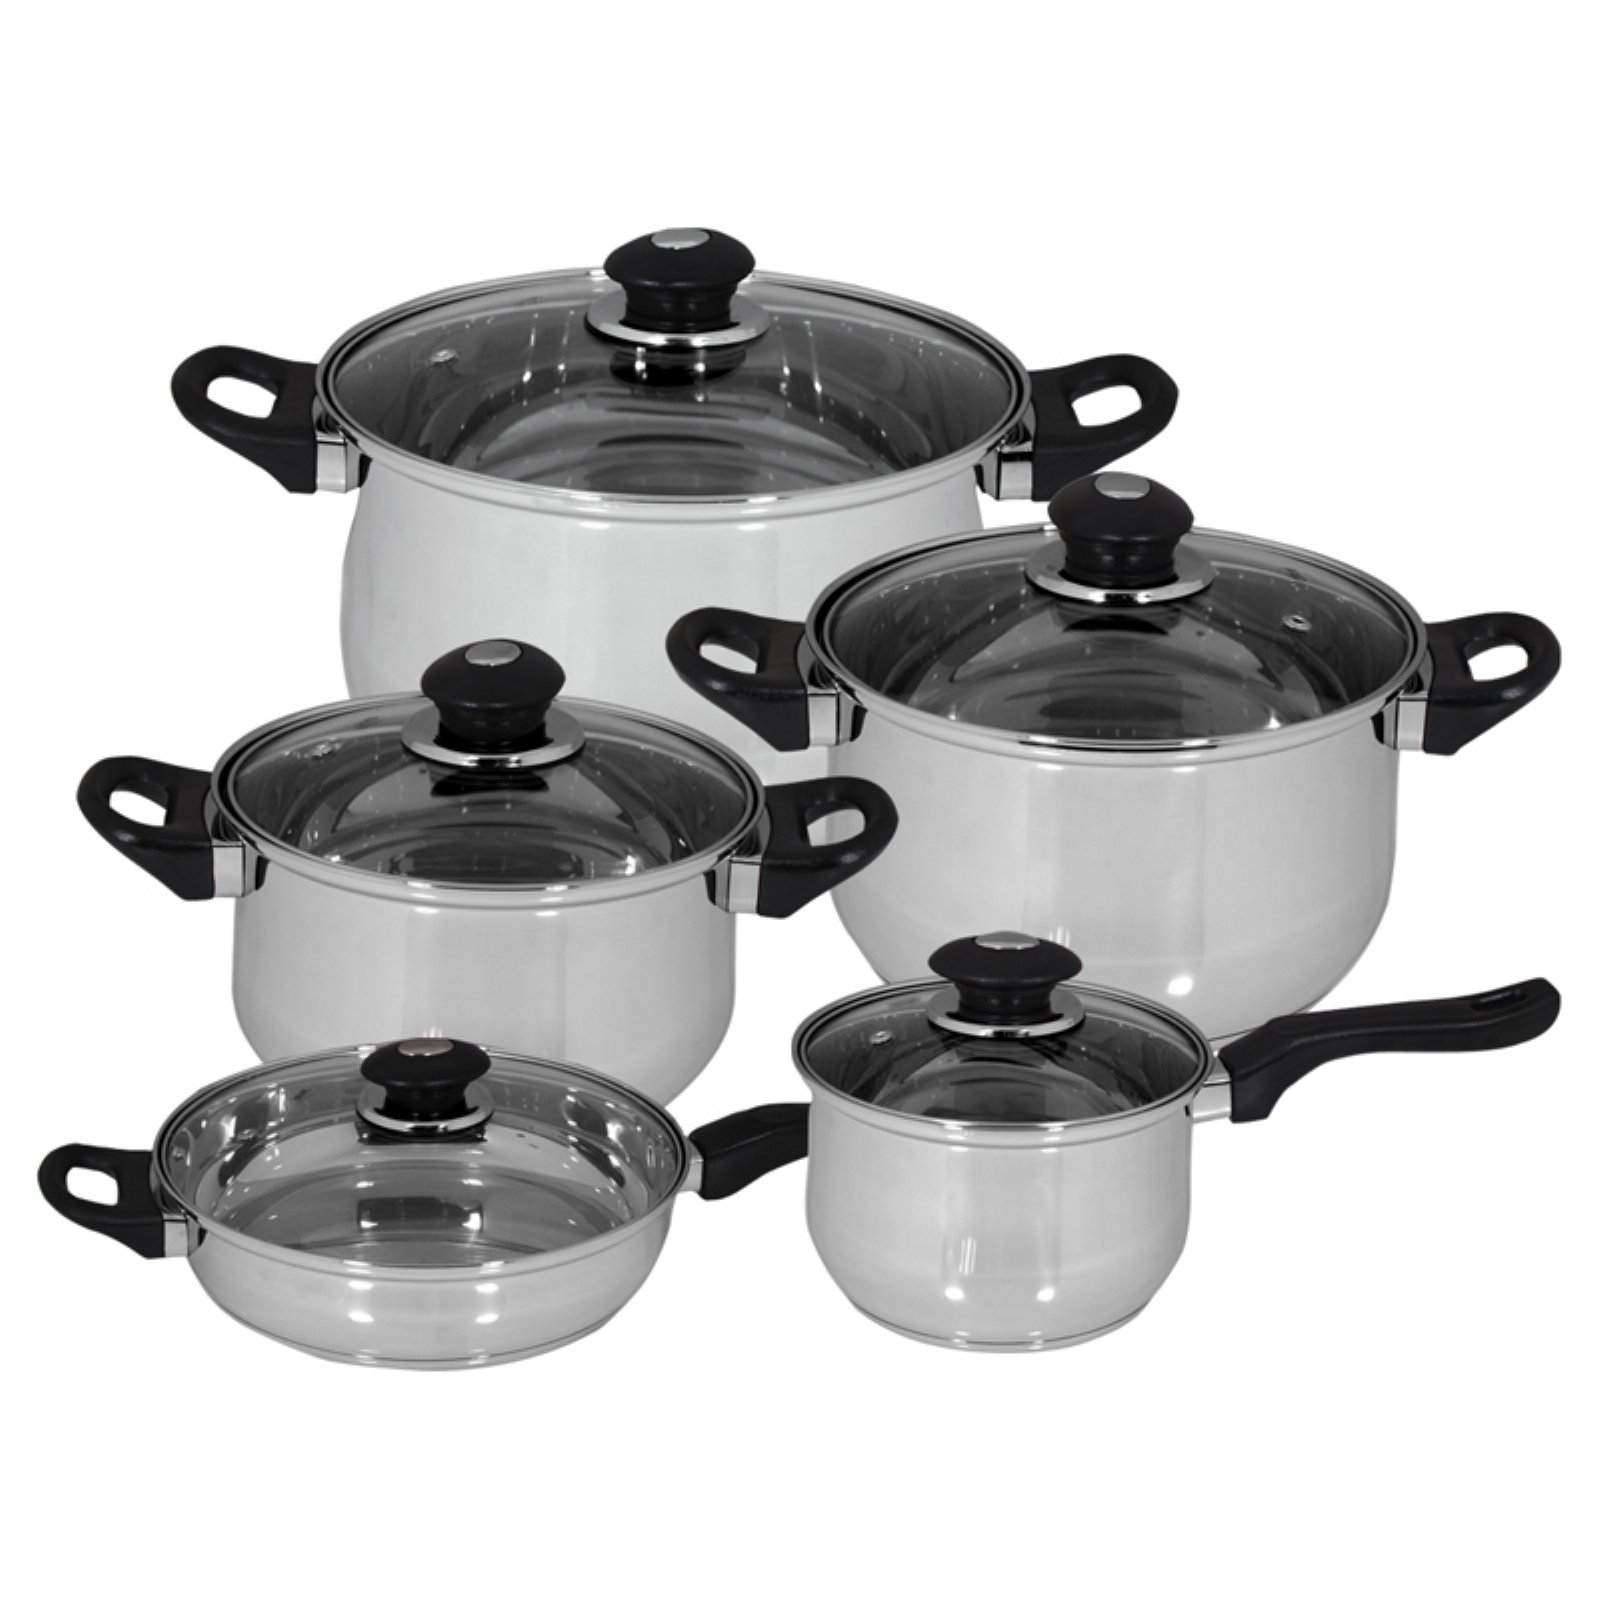 Magefesa Family 10 Piece Stainless Steel Cookware Set